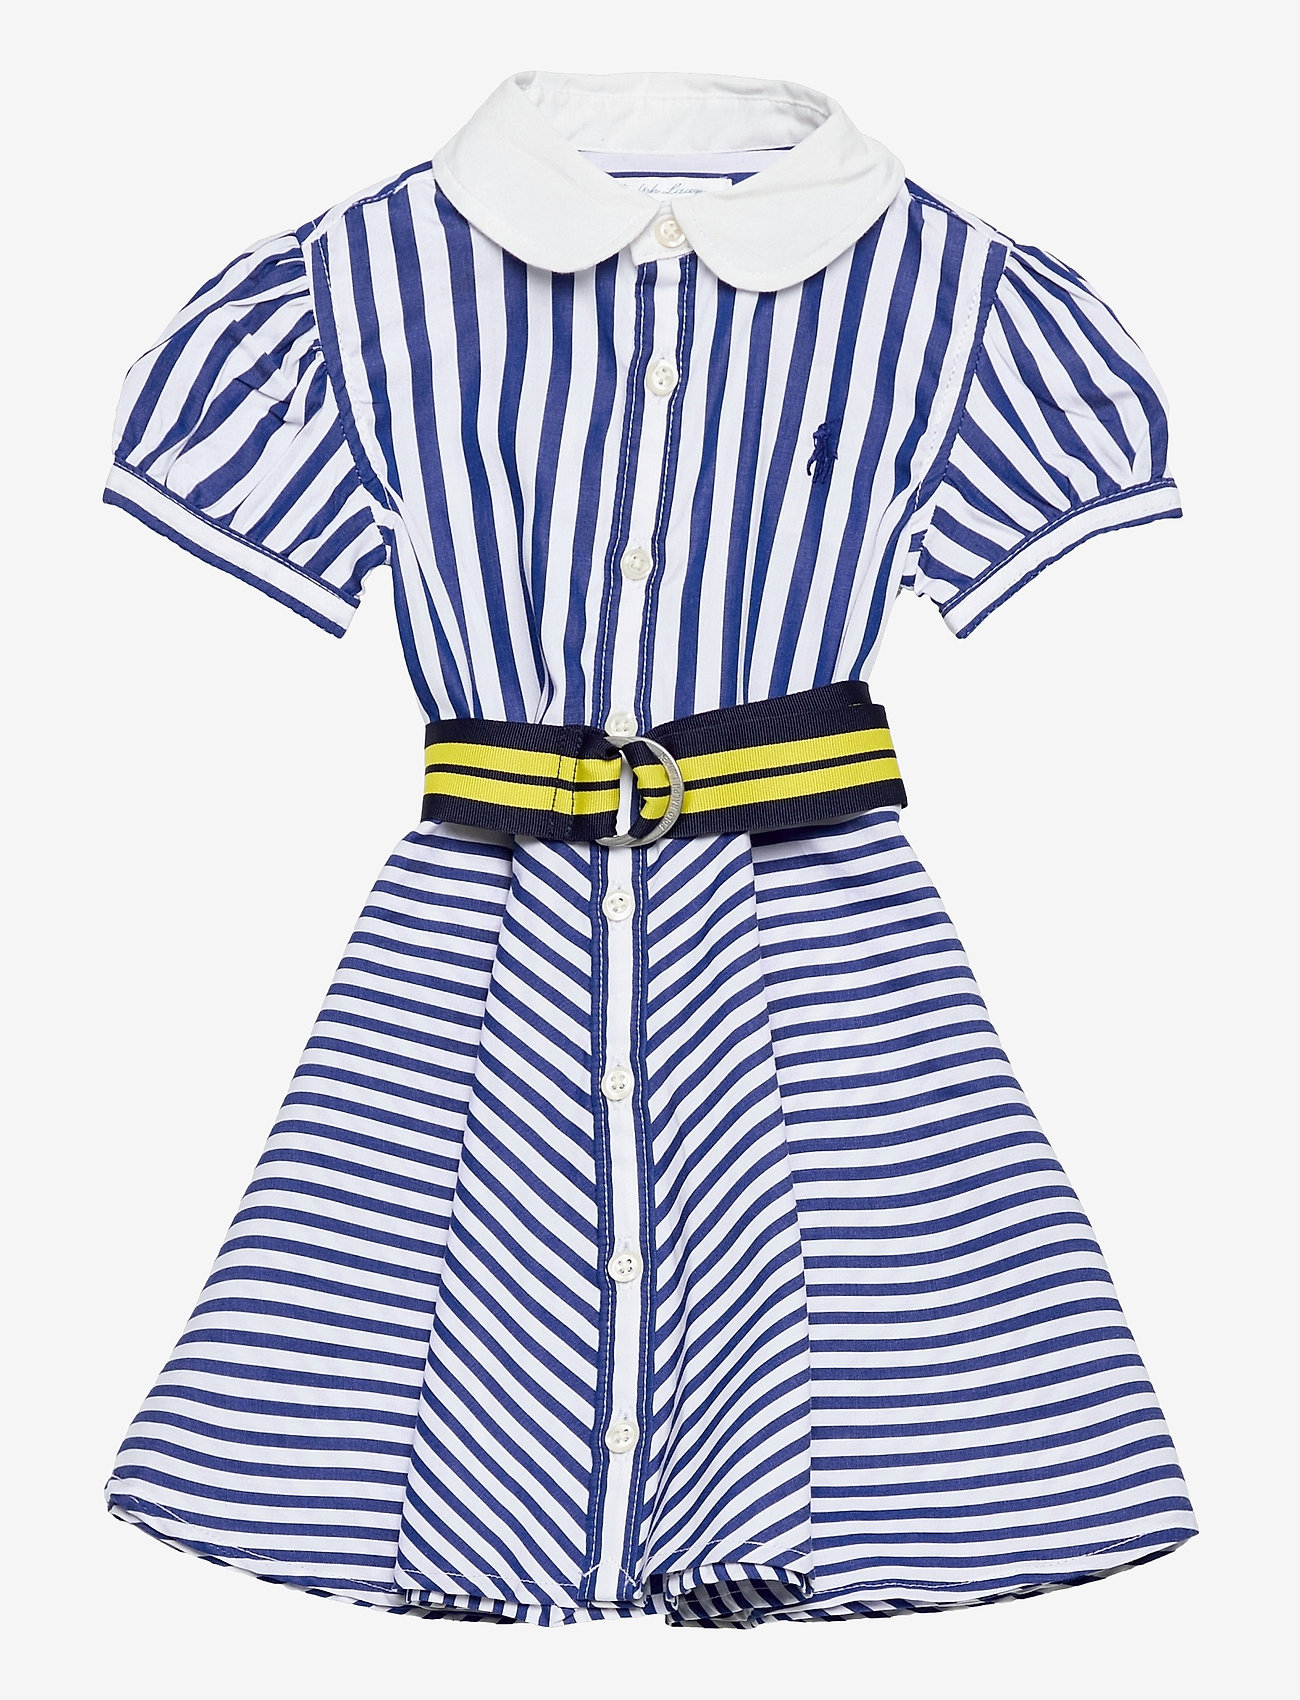 Ralph Lauren Baby - Shirtdress, Belt, & Bloomer - dresses - blue/white - 0